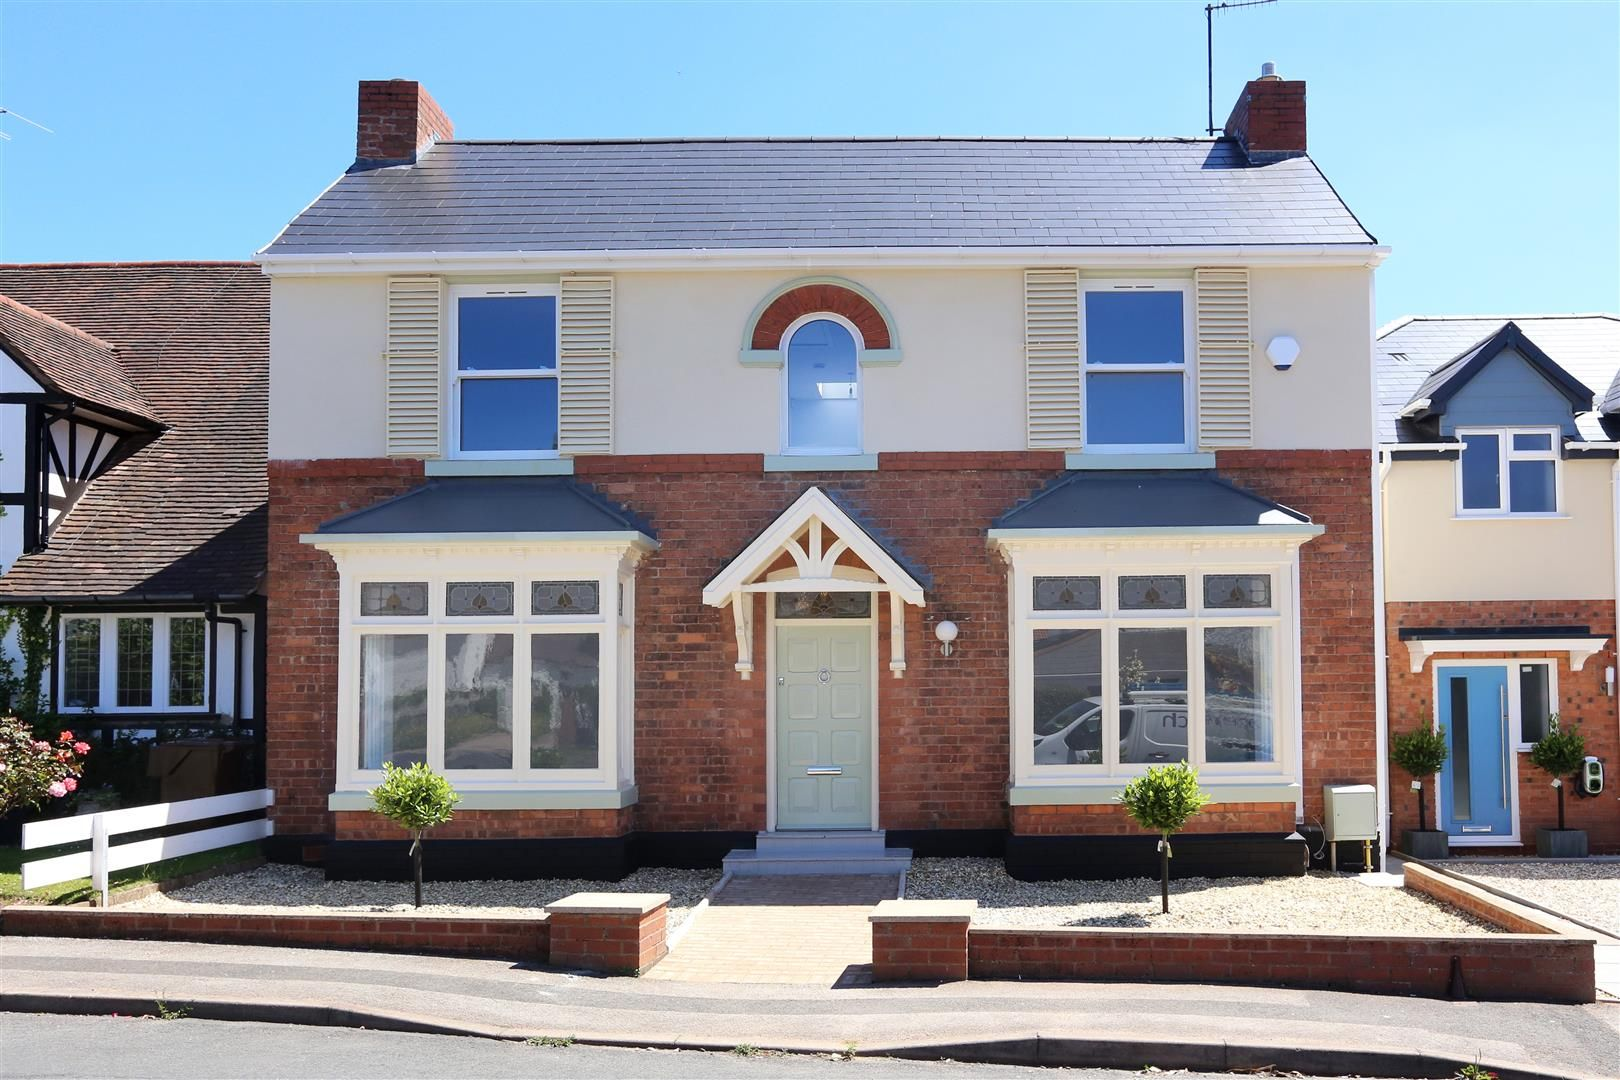 4 bed detached for sale in Hagley